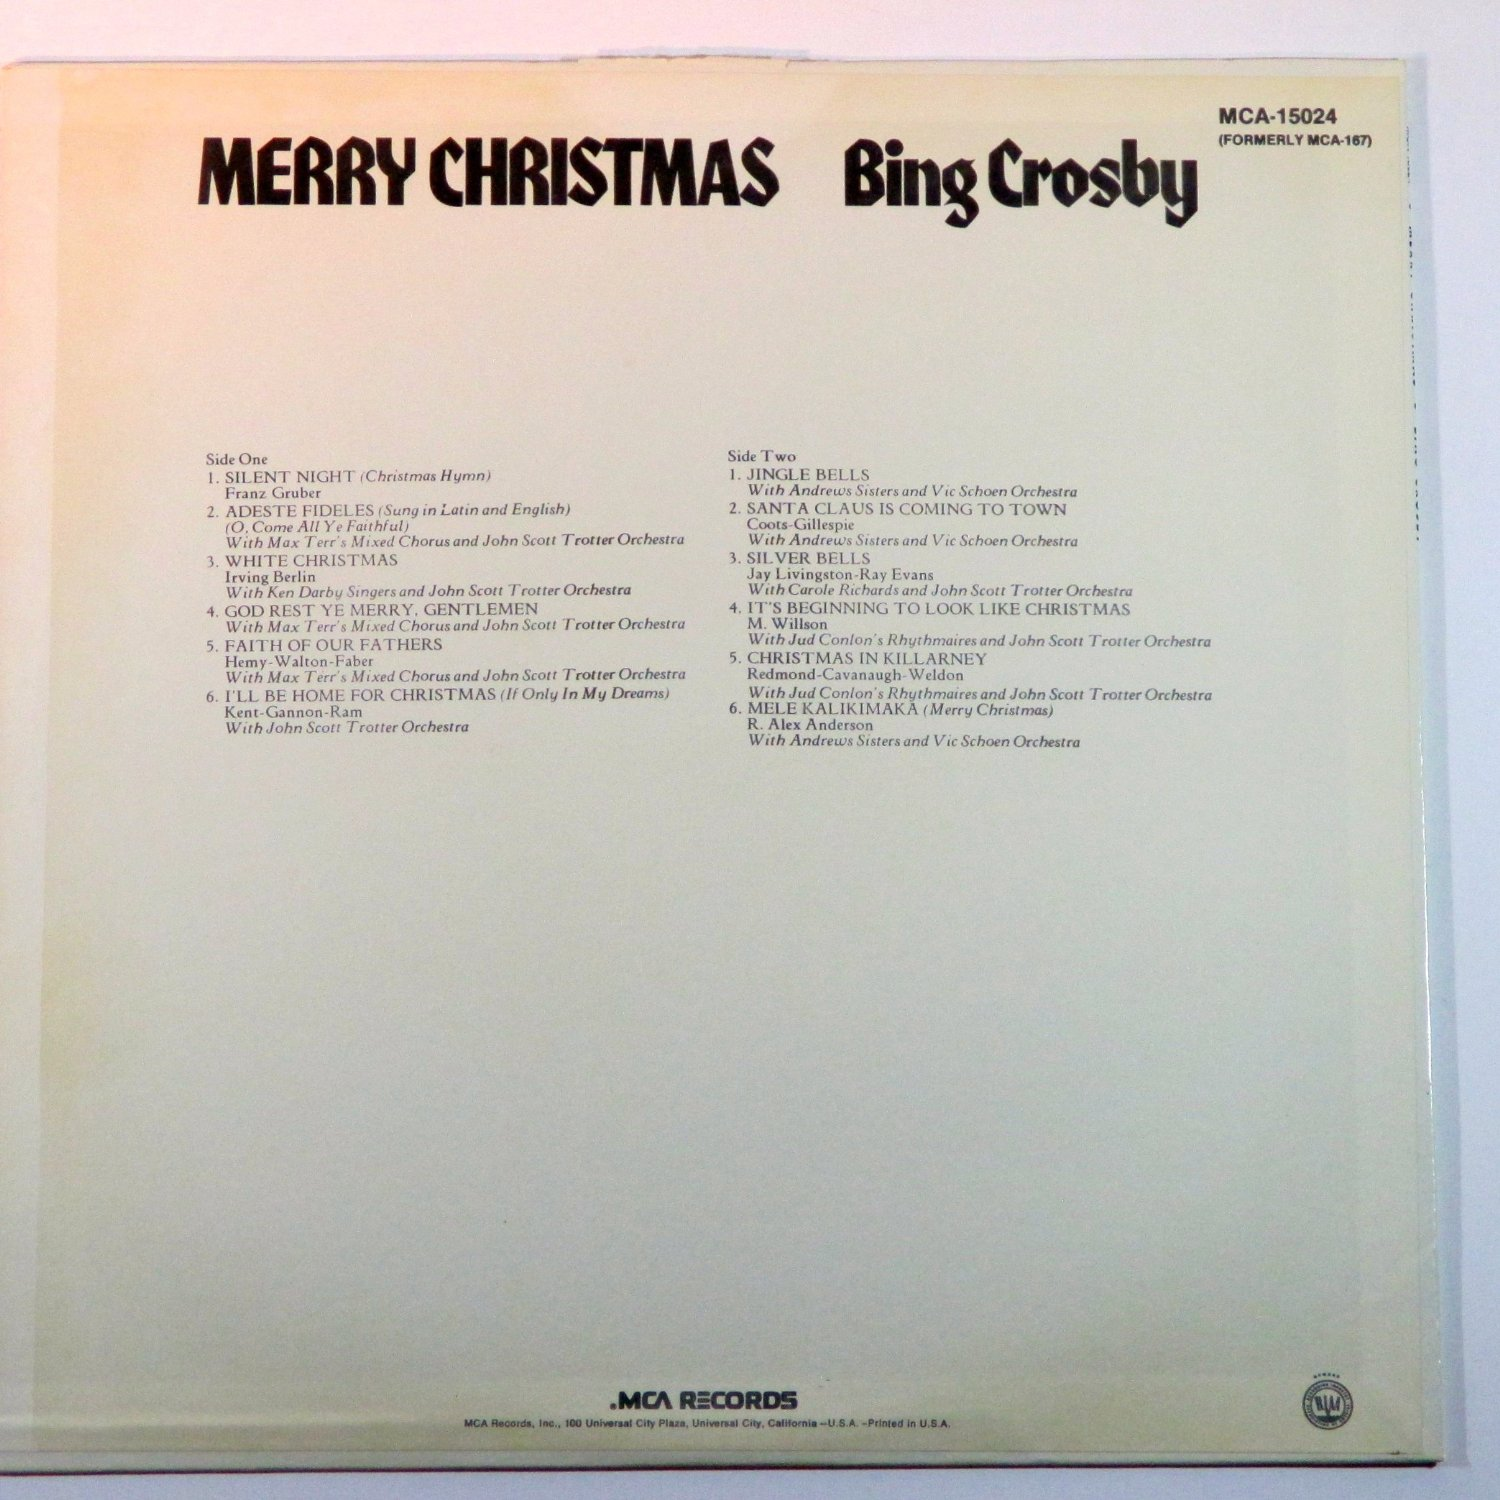 BING CROSBY MERRY CHRISTMAS LP BACK COVER